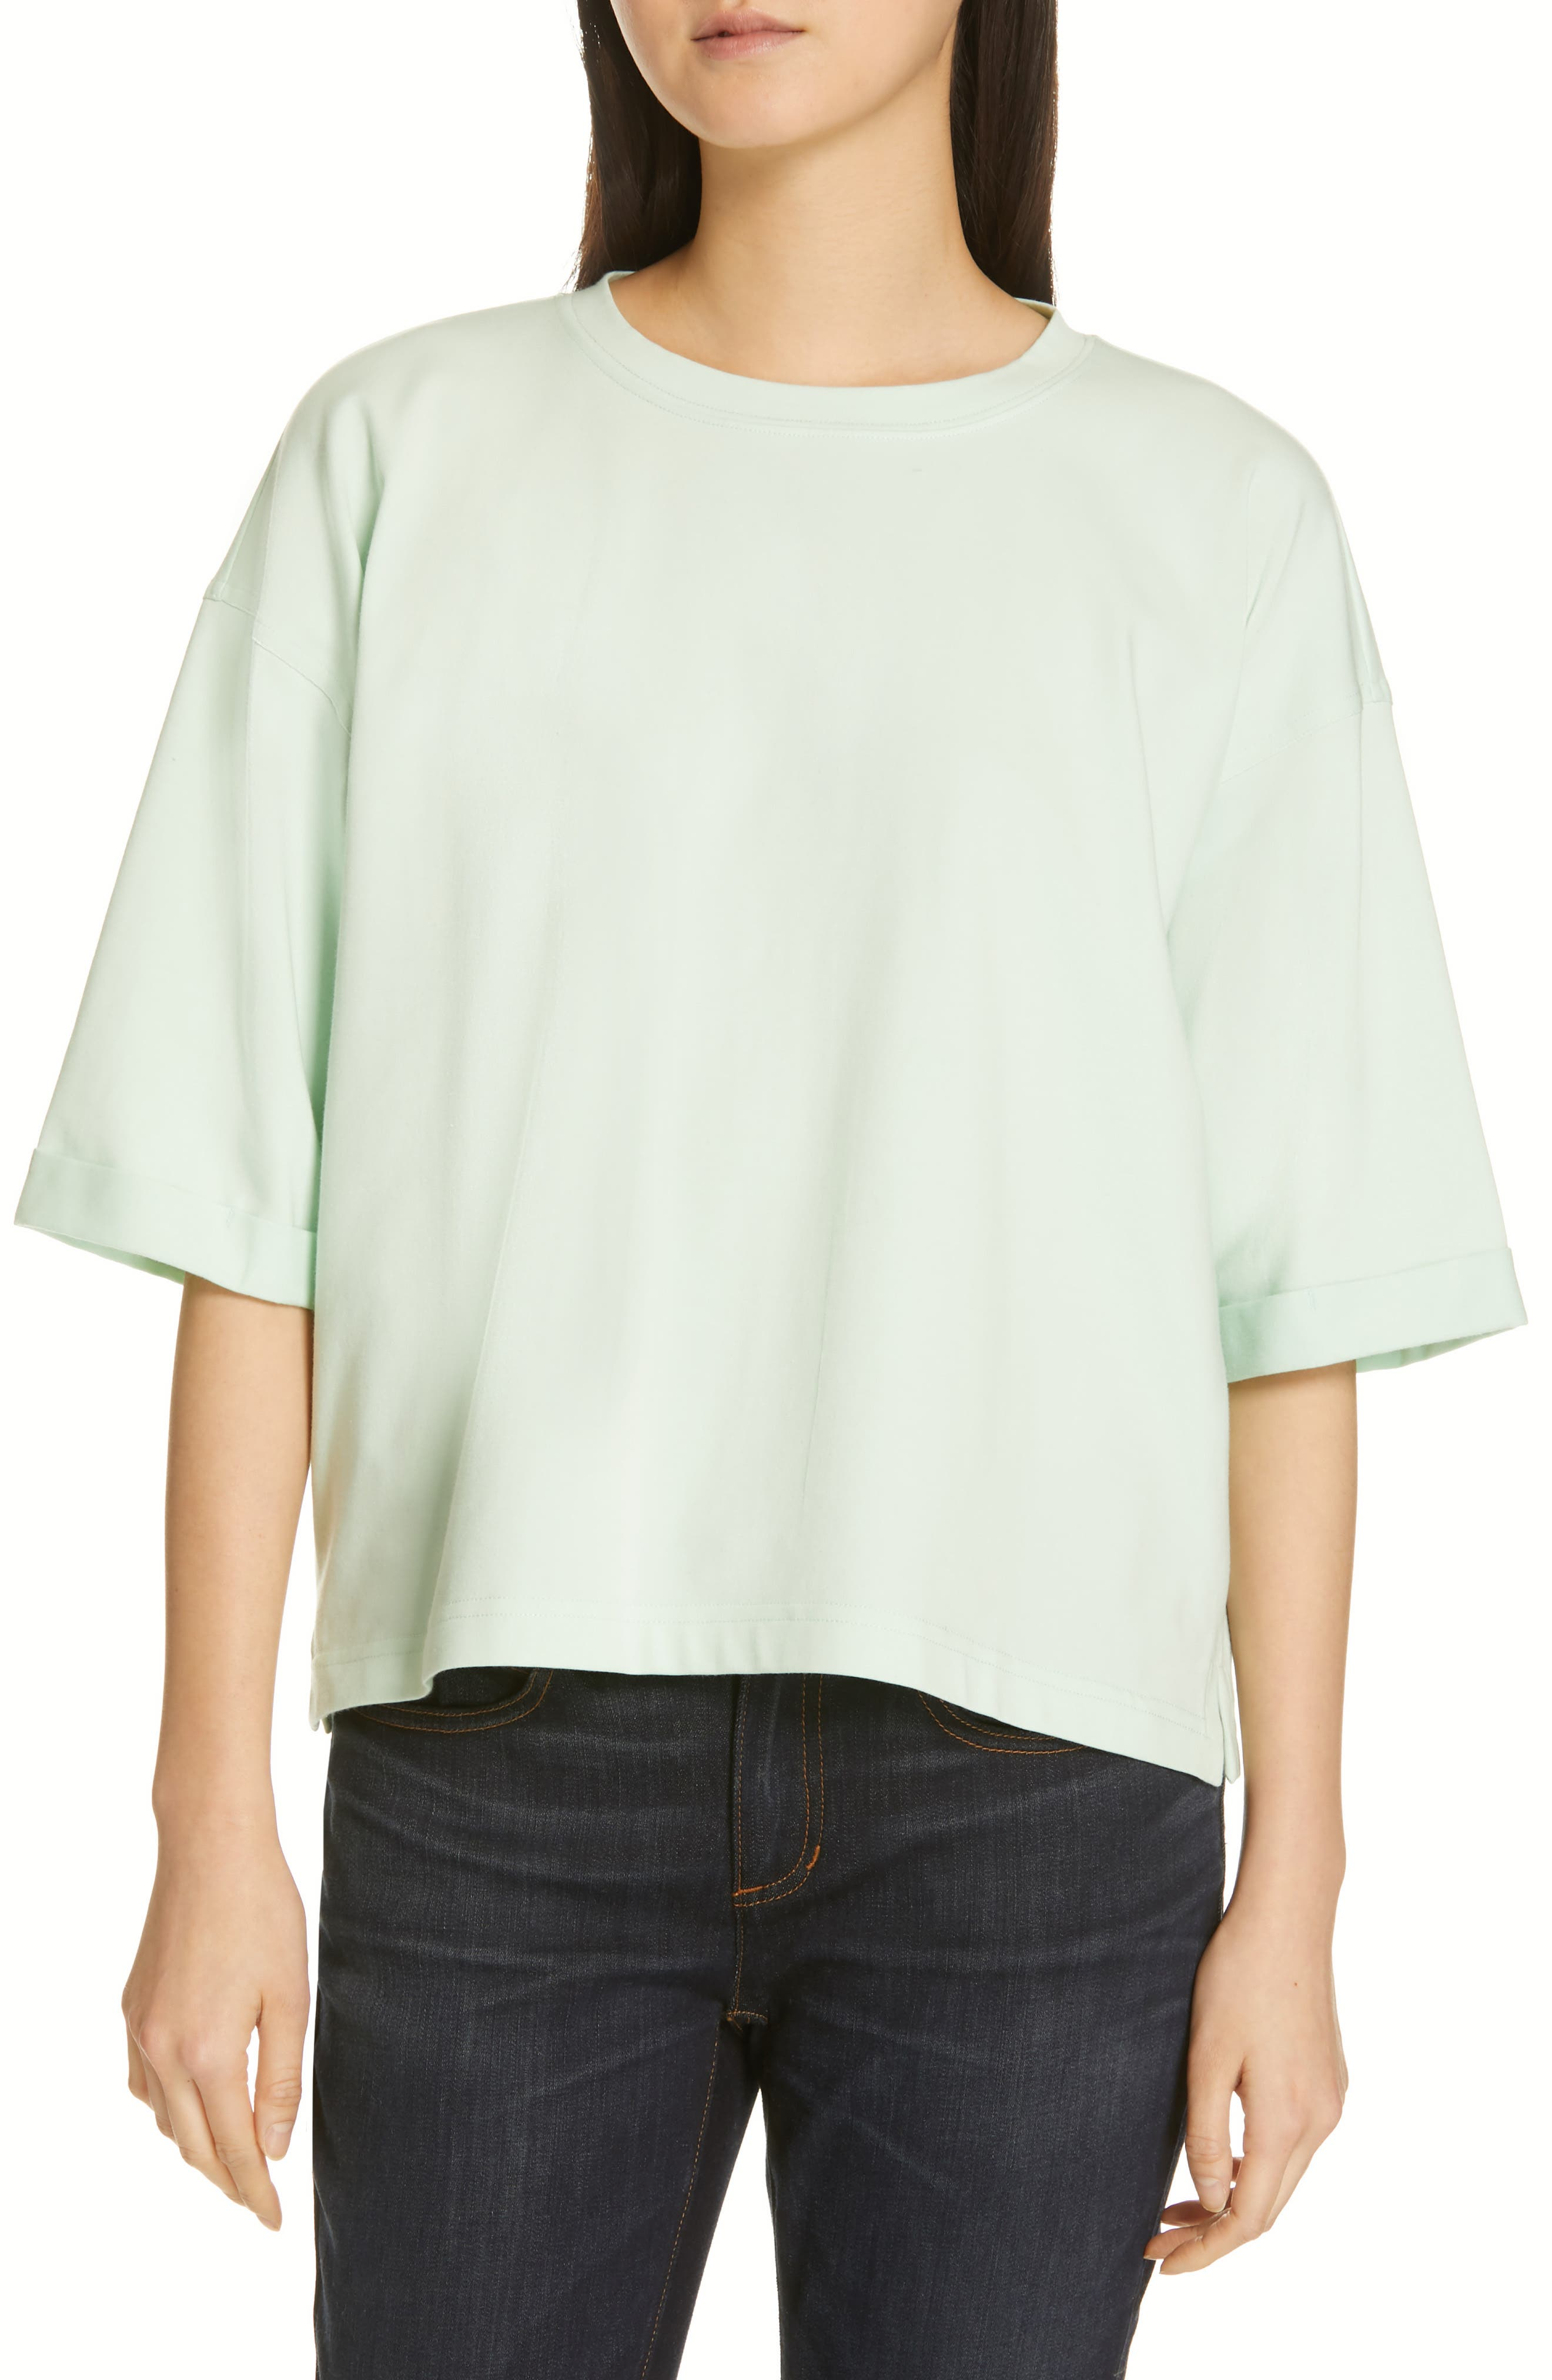 EILEEN FISHER, Stretch Organic Cotton Top, Main thumbnail 1, color, PRISM